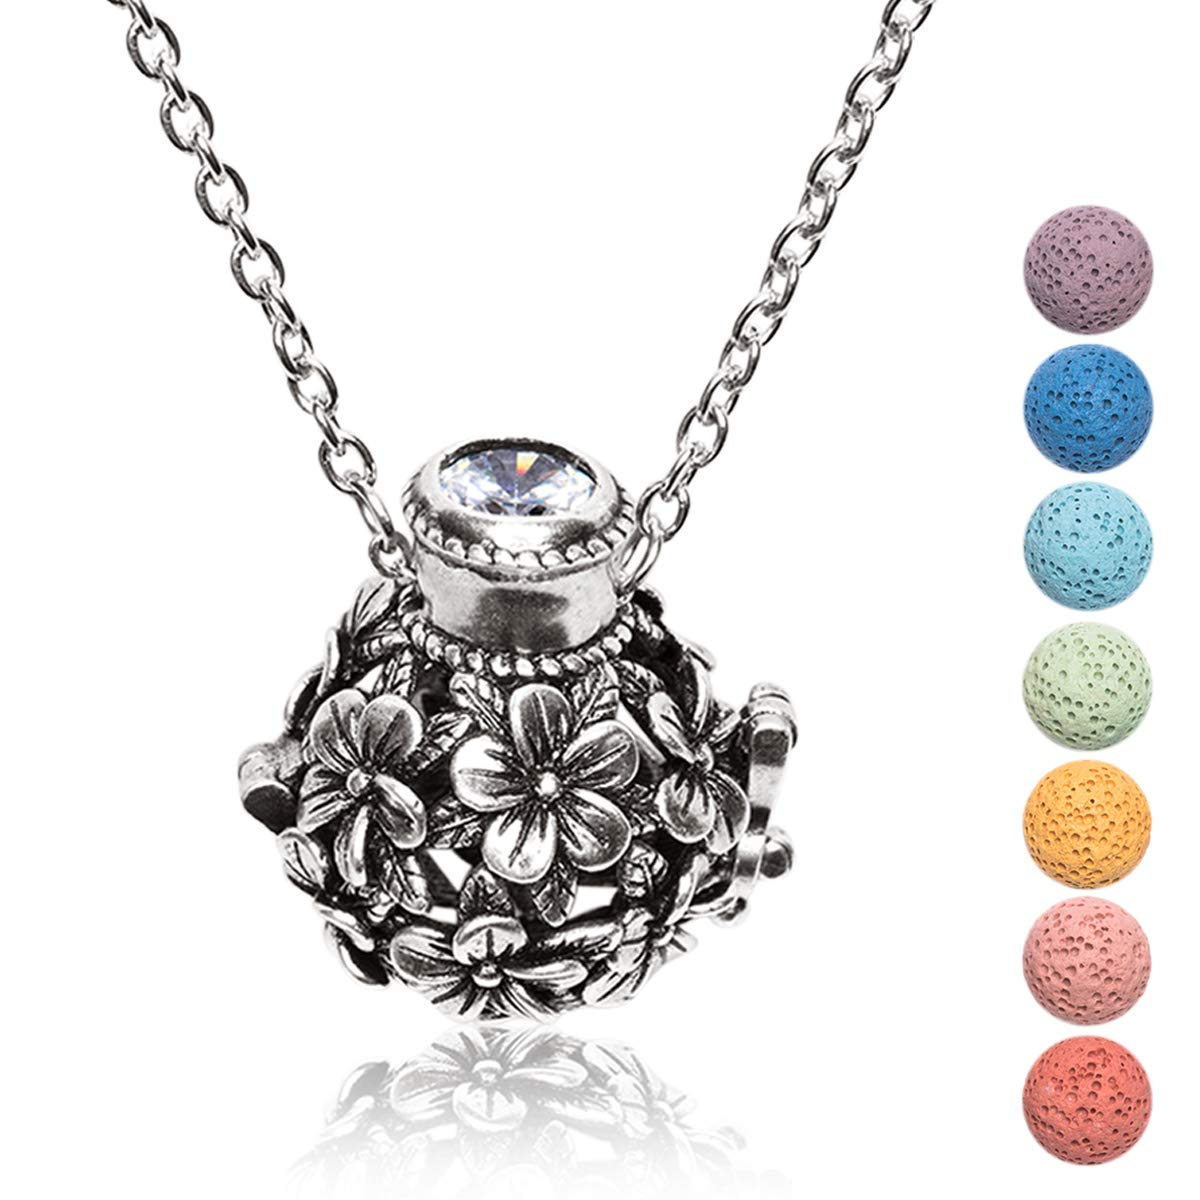 Kayder Essential Oil Diffuser Flower Ball Filigree Locket Aromatherapy Pendant Necklace with 7 Color Chakra Lava Rock Bead Inserts, Antique Silver Yoga Necklace for Women Girls, 20'' to 22'' Adjustable